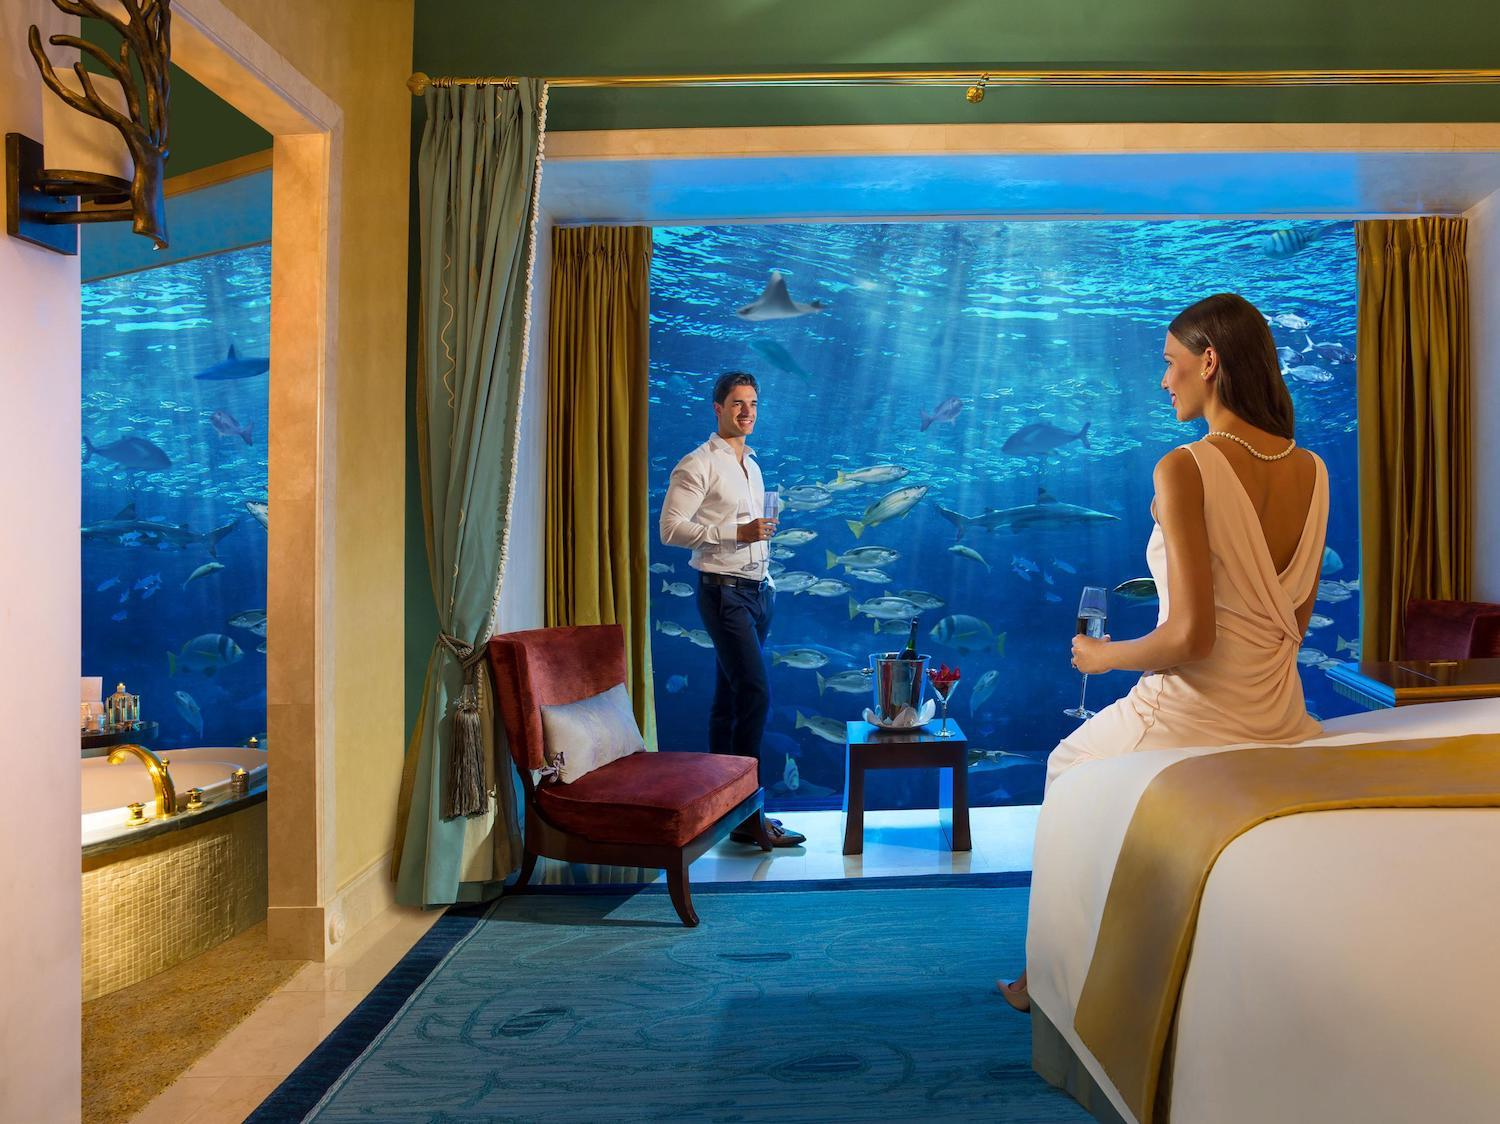 These Coolest Undersea Hotels and Resorts Will Take Your